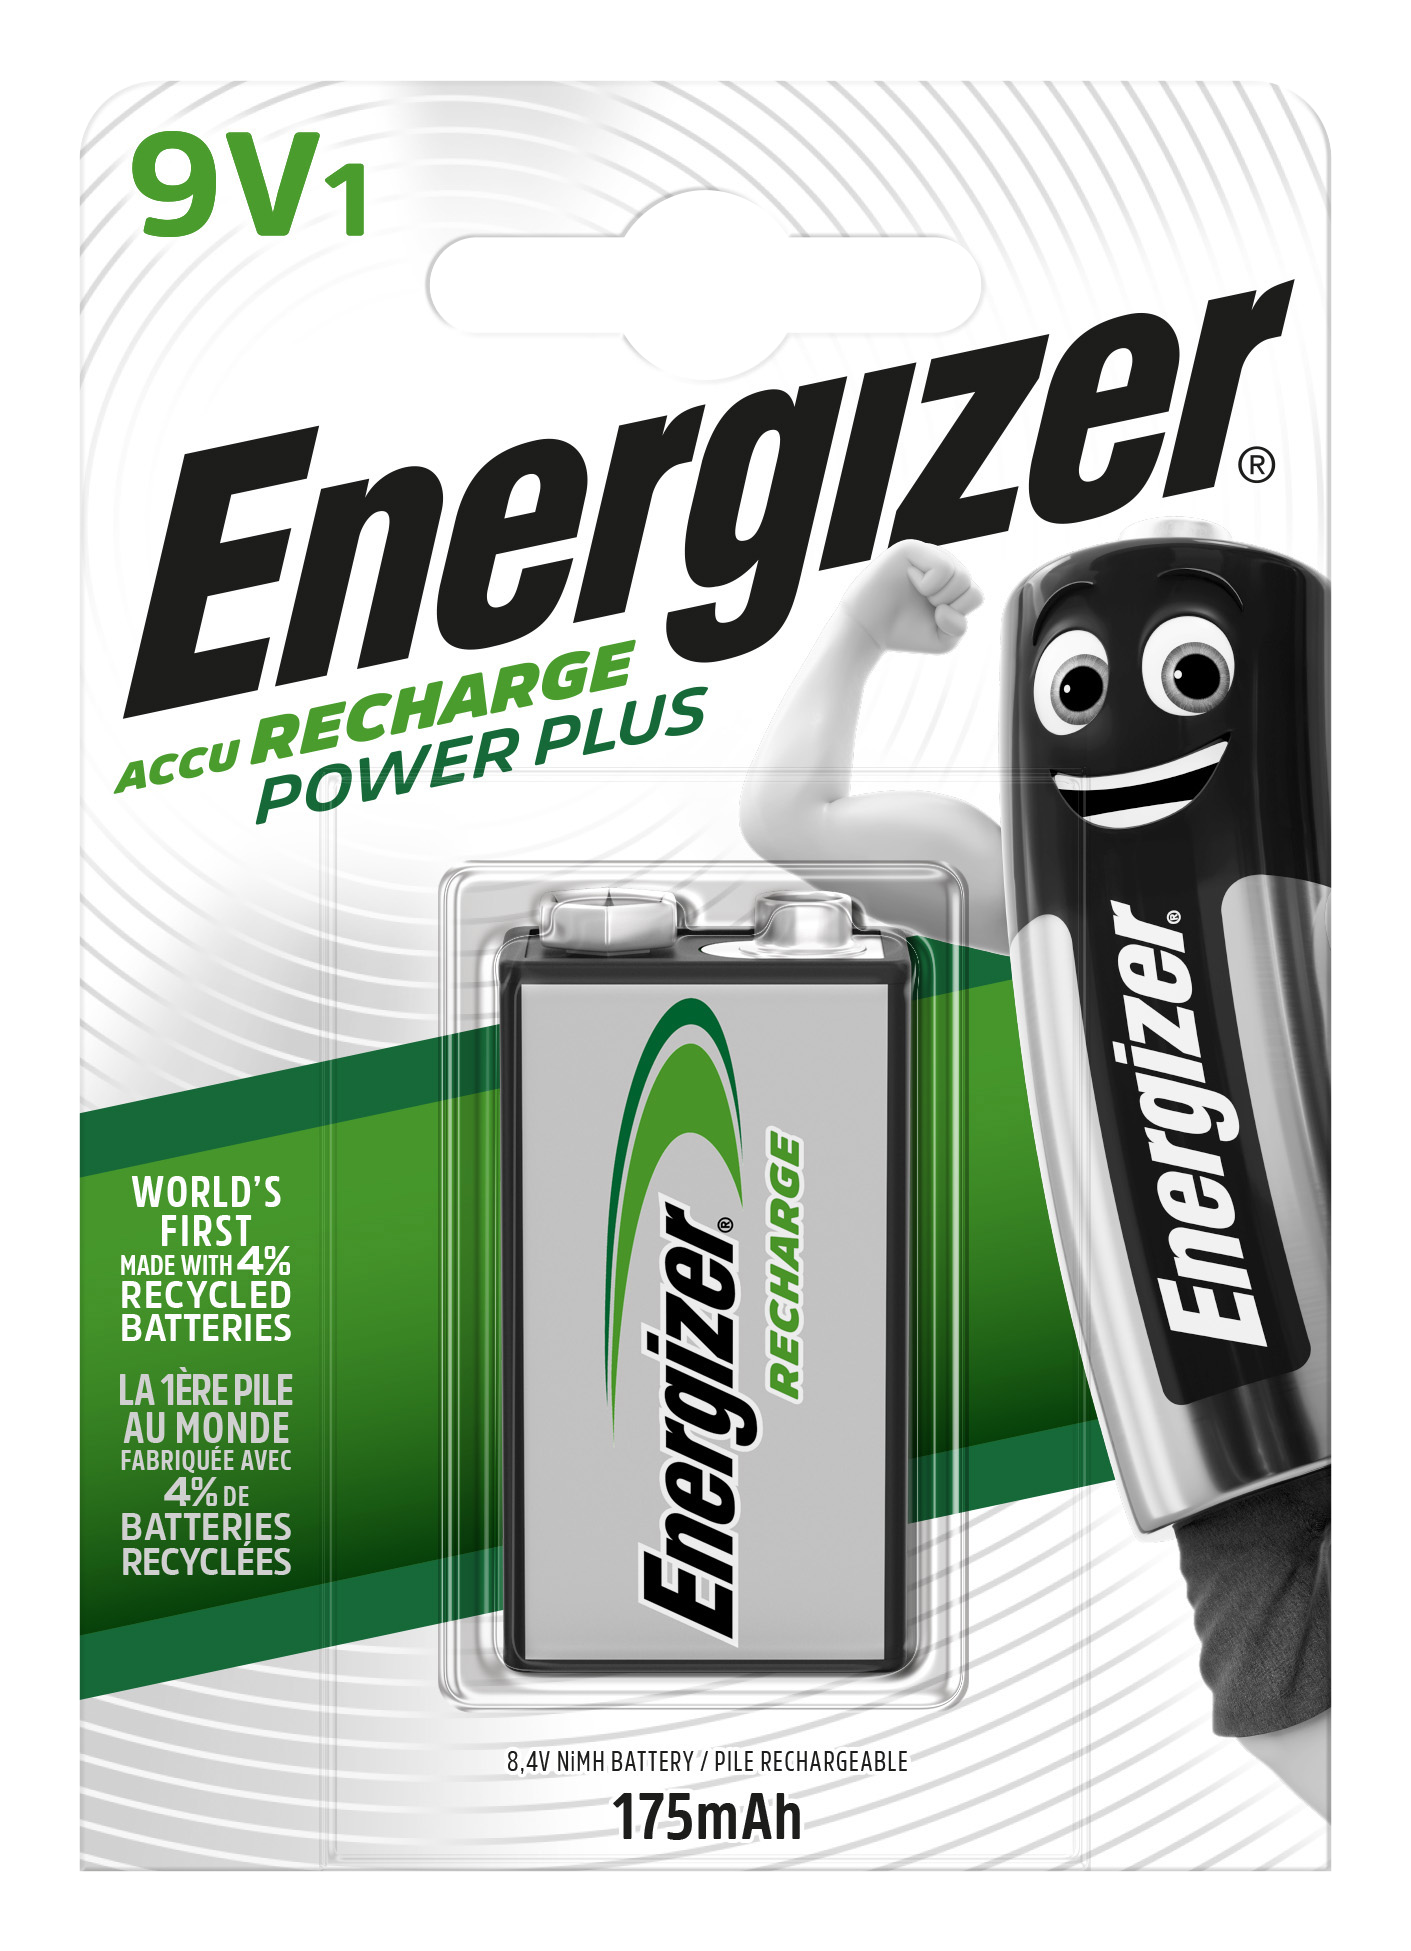 Baterie 9V 175mAh Energizer Power Plus, 1ks (blistr)